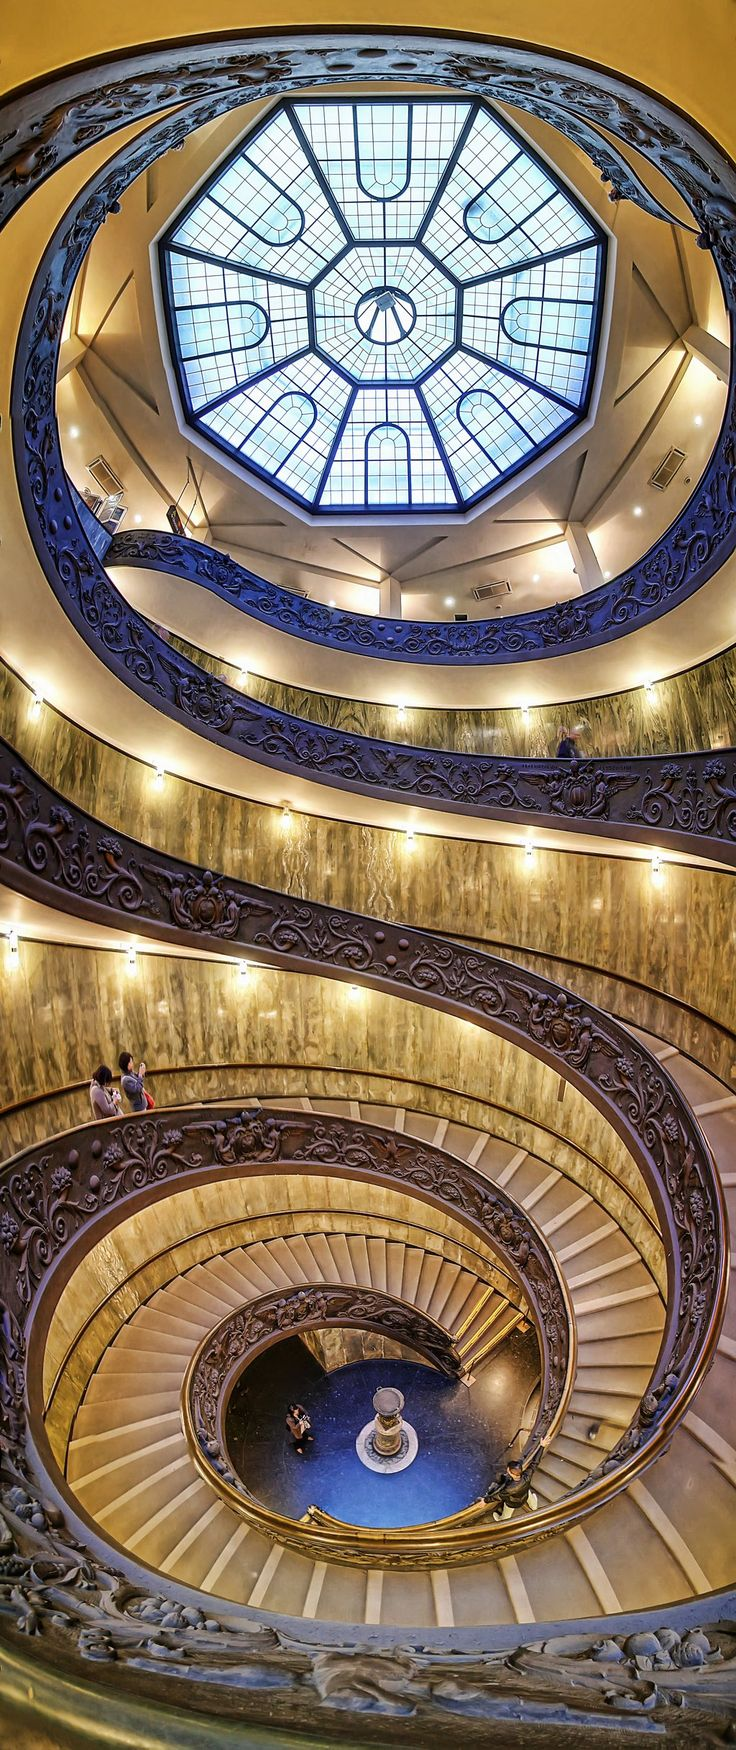 Spiral staircase at the Vatican Museum. Photo by Silvio Zangarini http://www.eduardplanting.com/artists/zangarini-silvio/stairs-zangarini/spiral-vatican-museum.html